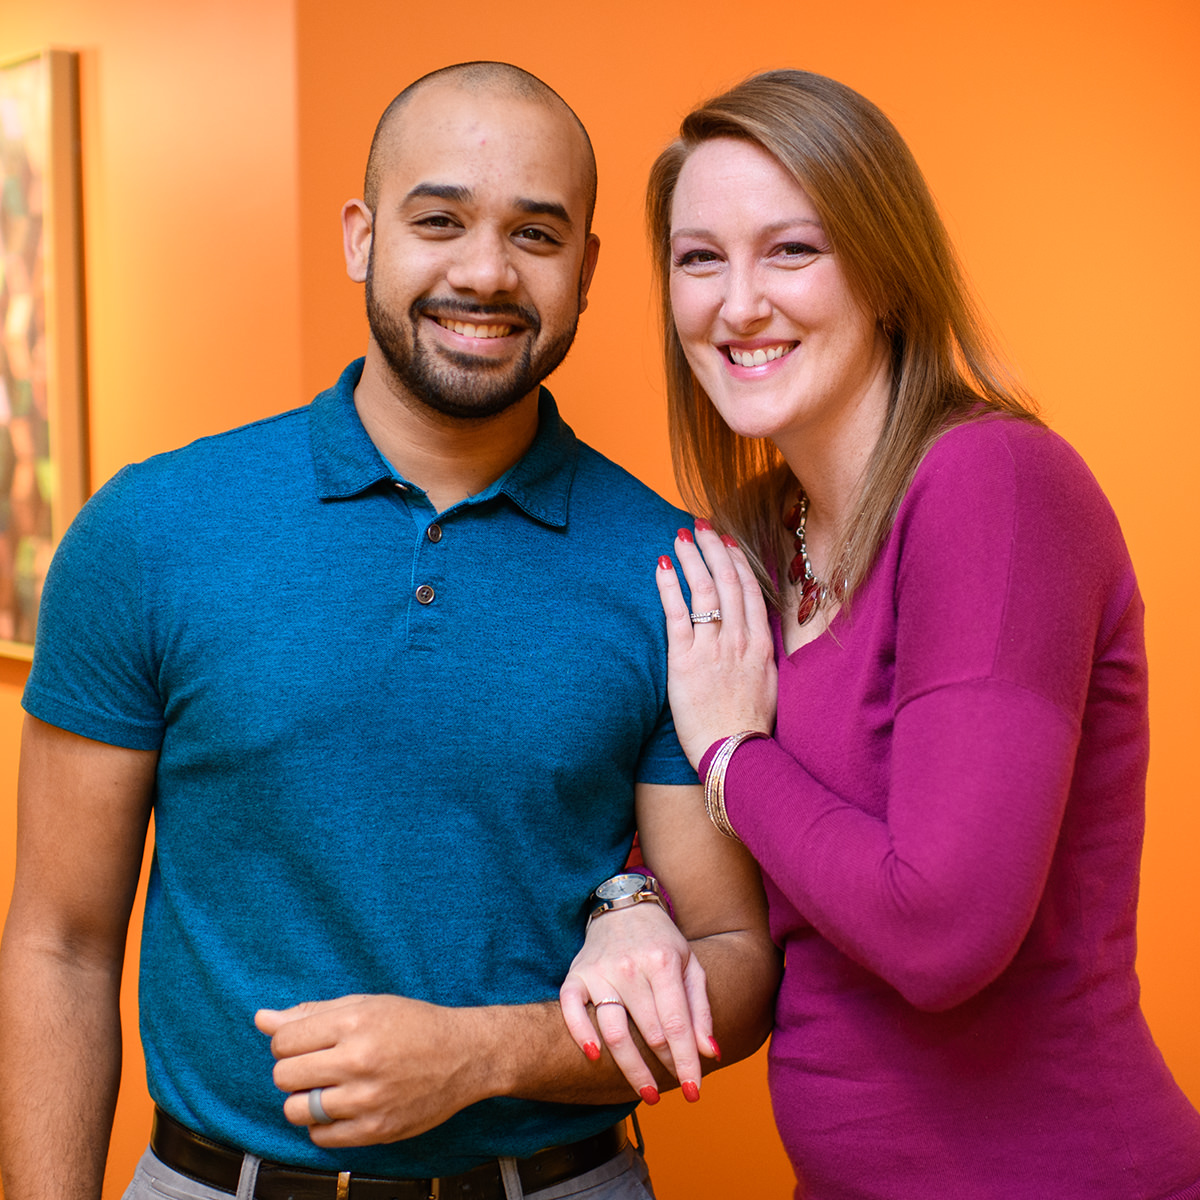 Brandon and Kristy love their jobs and love working together.